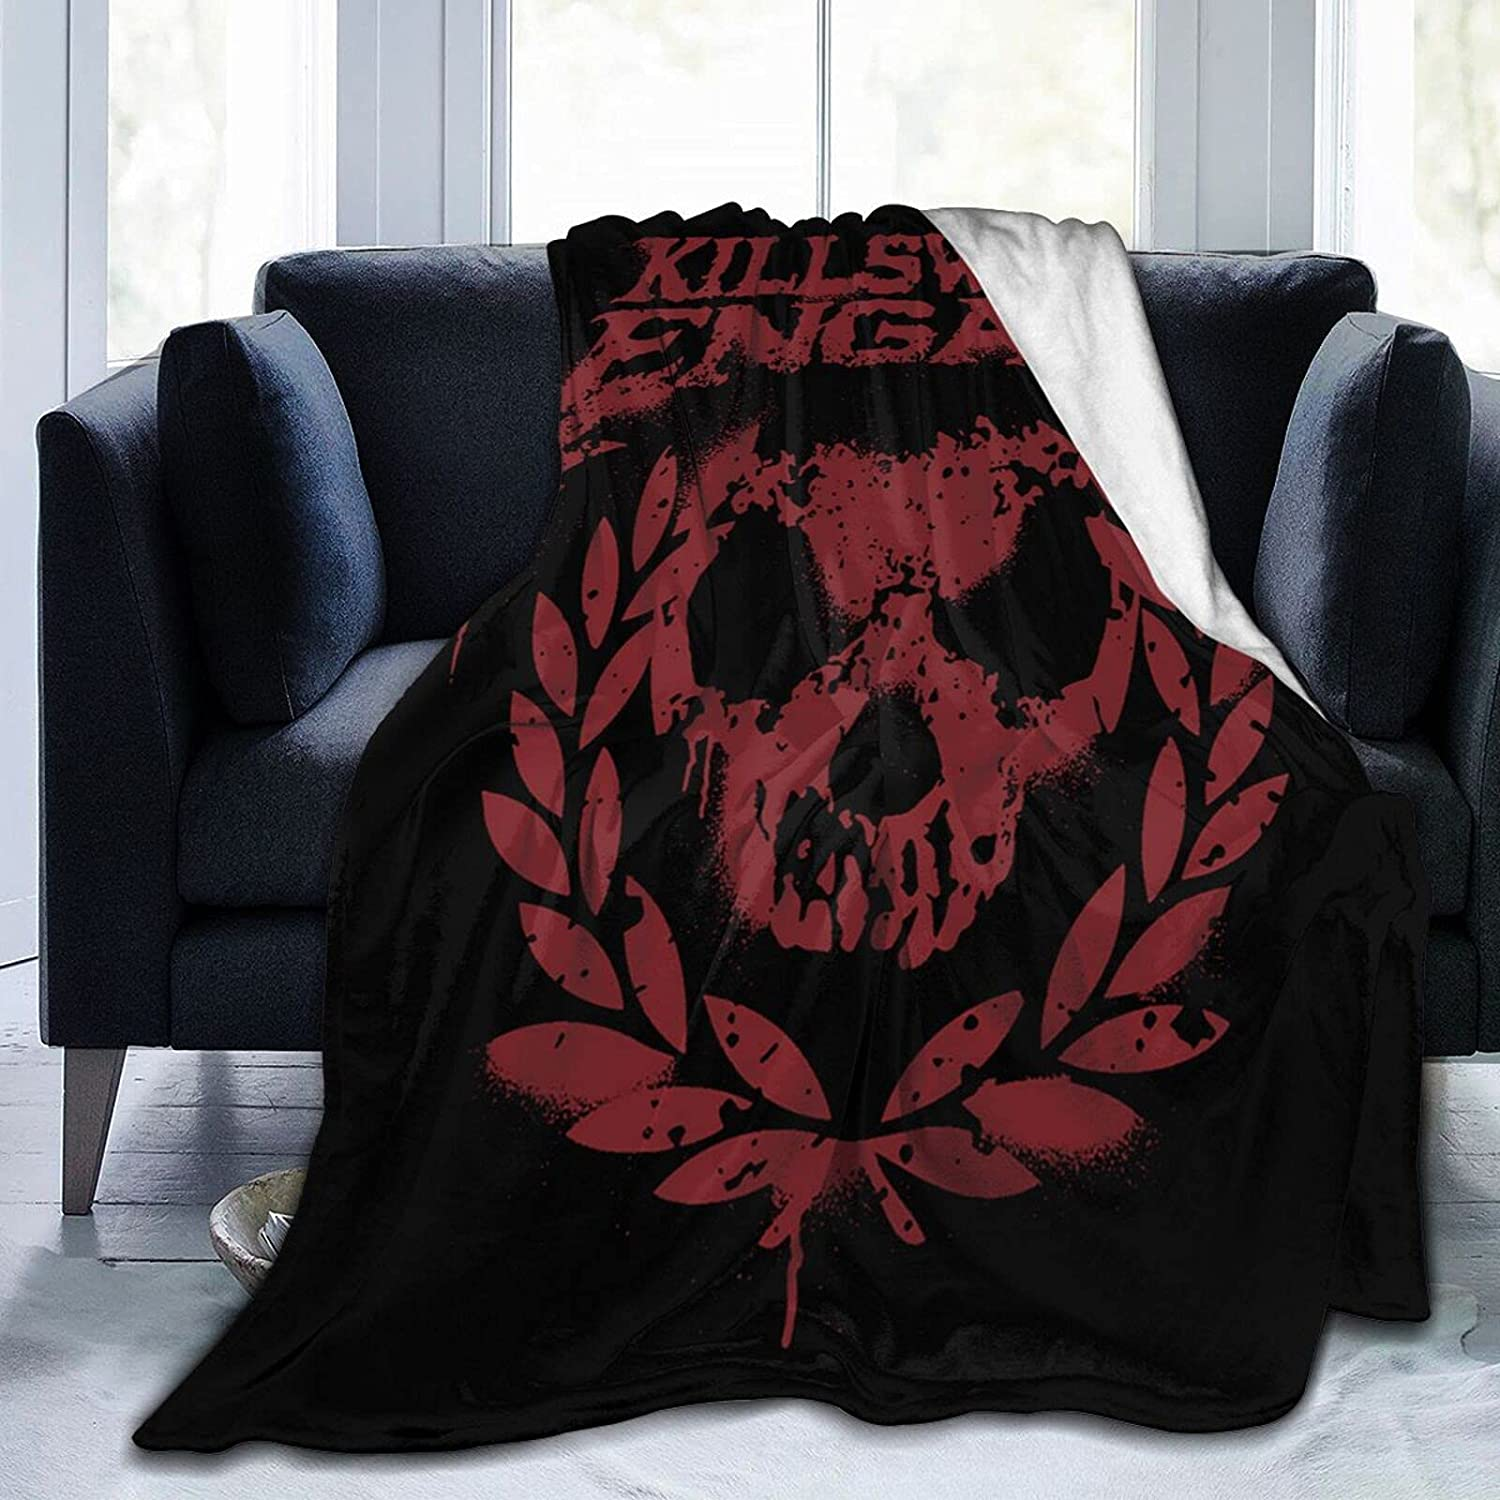 Killswitch-Engage Soft and Warm Cheap Dallas Mall mail order shopping Throw Micro Fleece Blanket